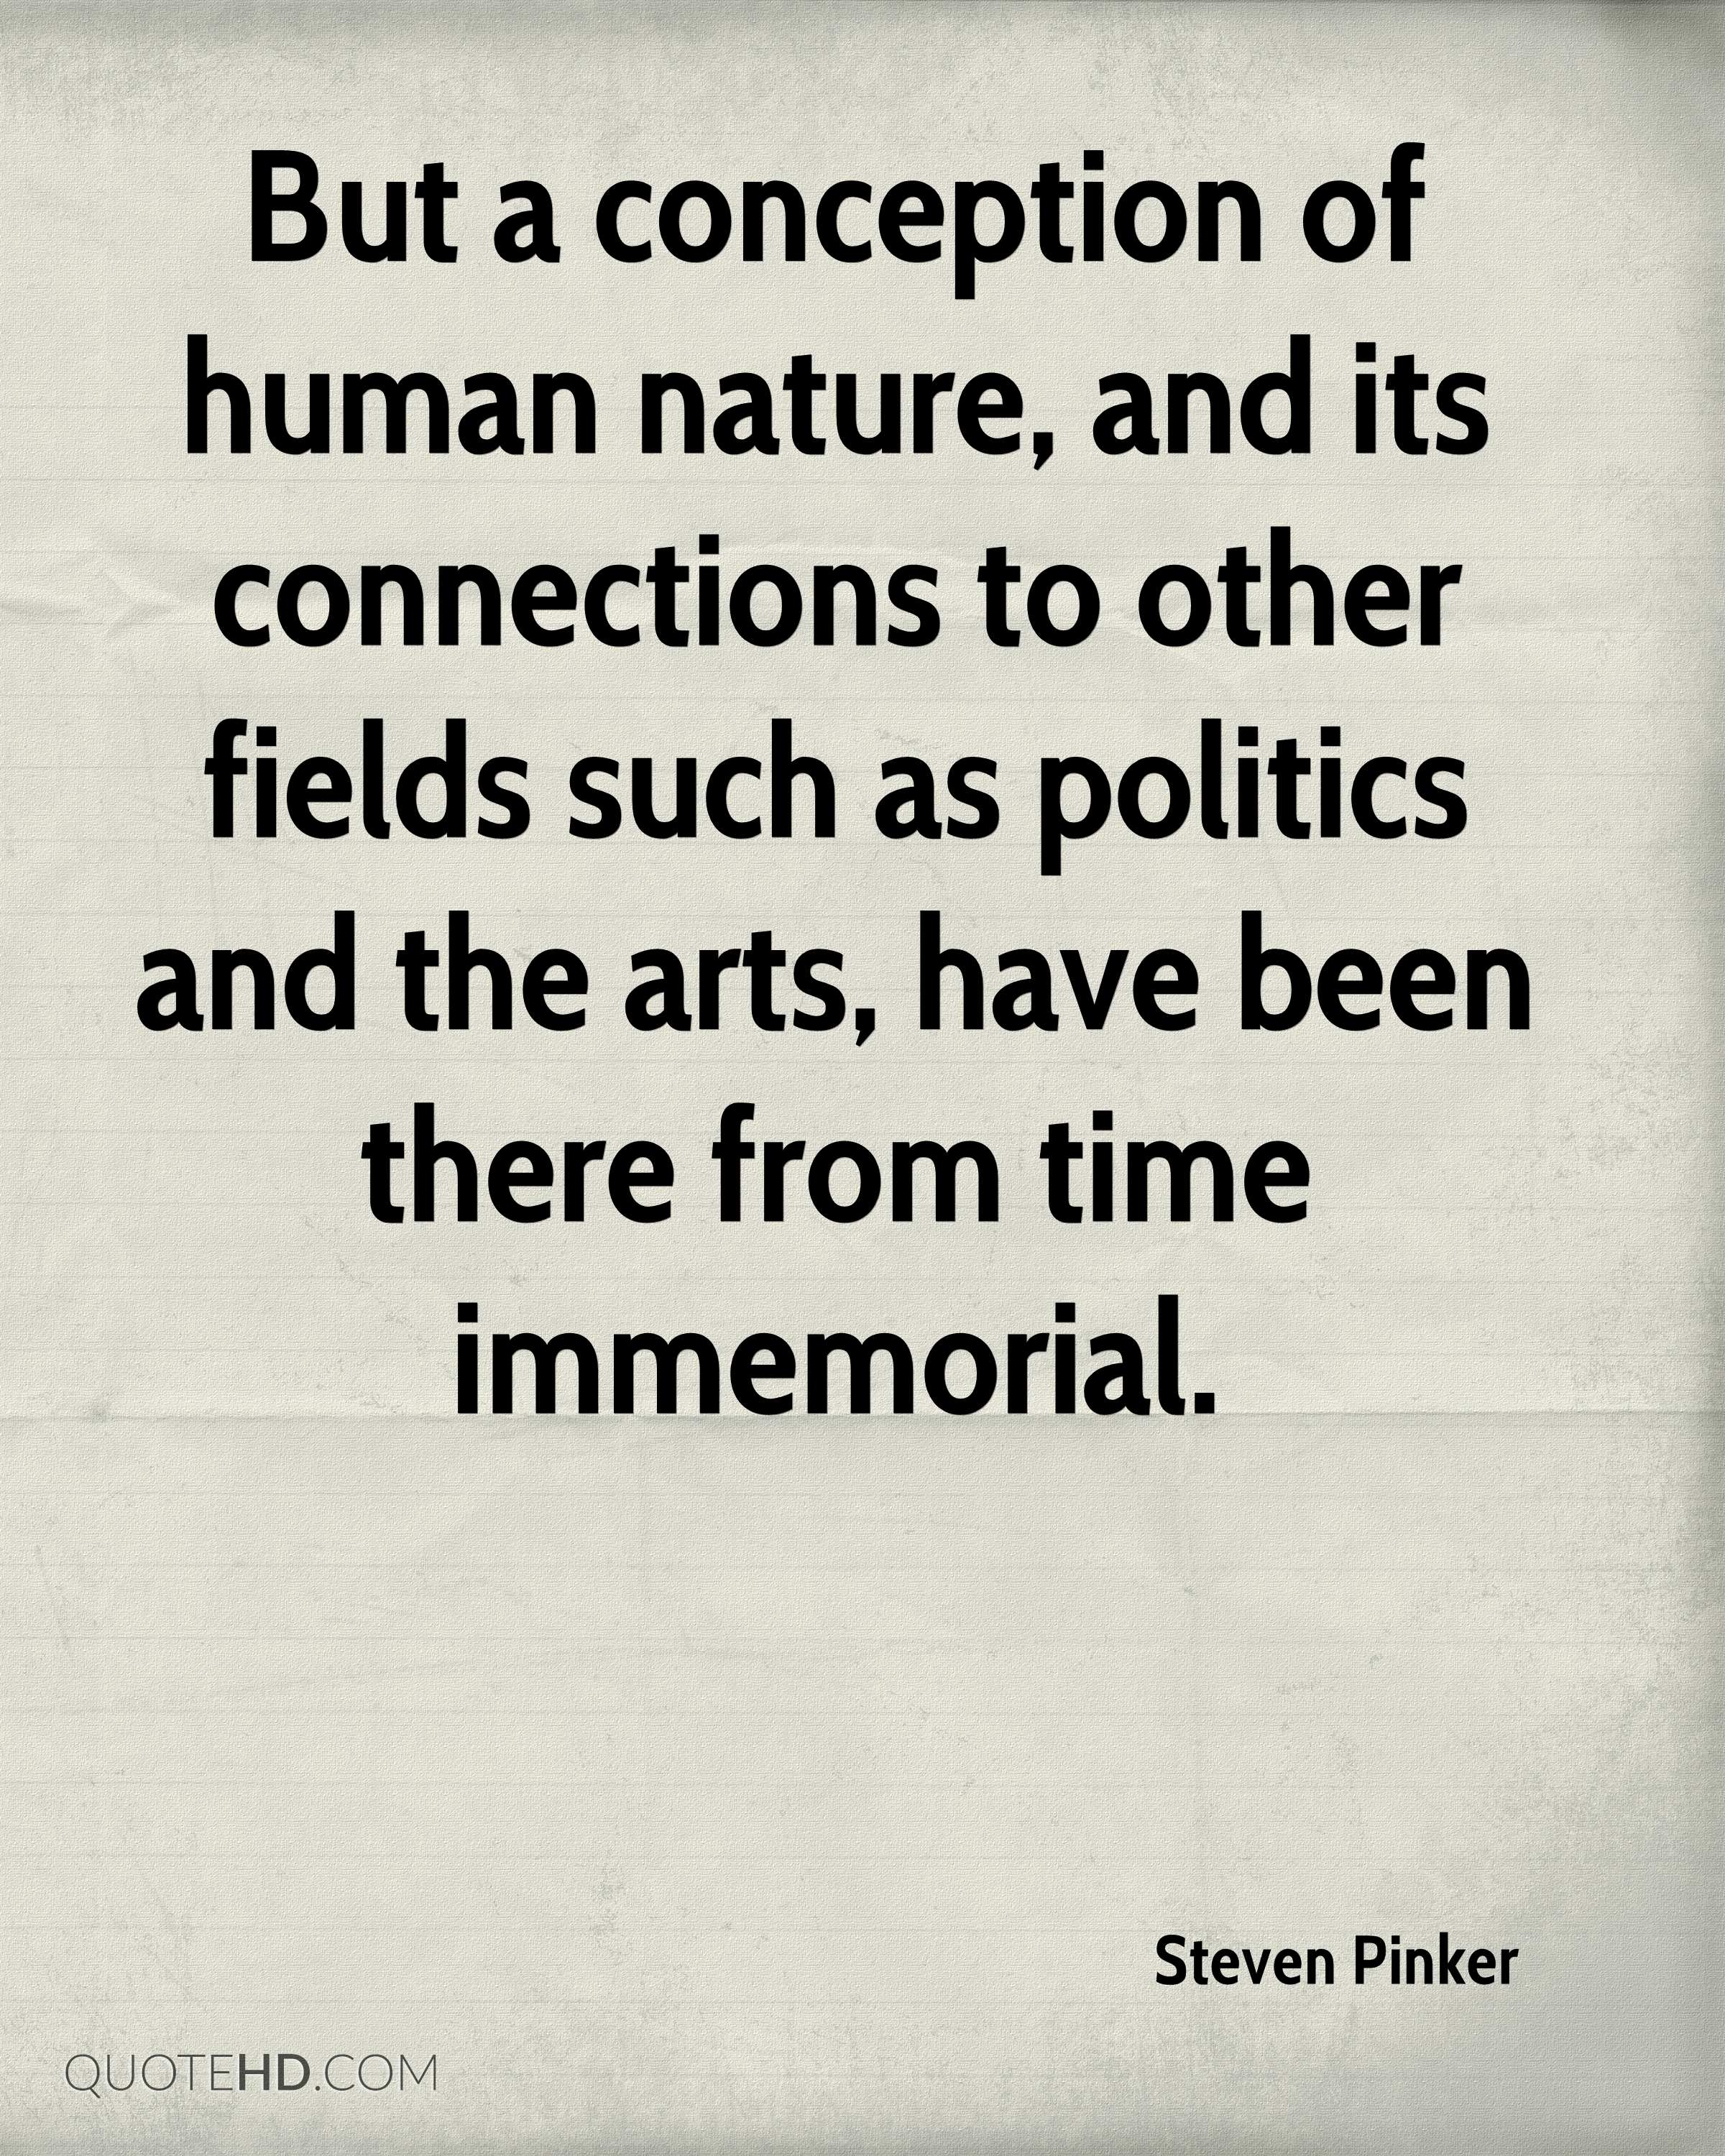 But a conception of human nature, and its connections to other fields such as politics and the arts, have been there from time immemorial.